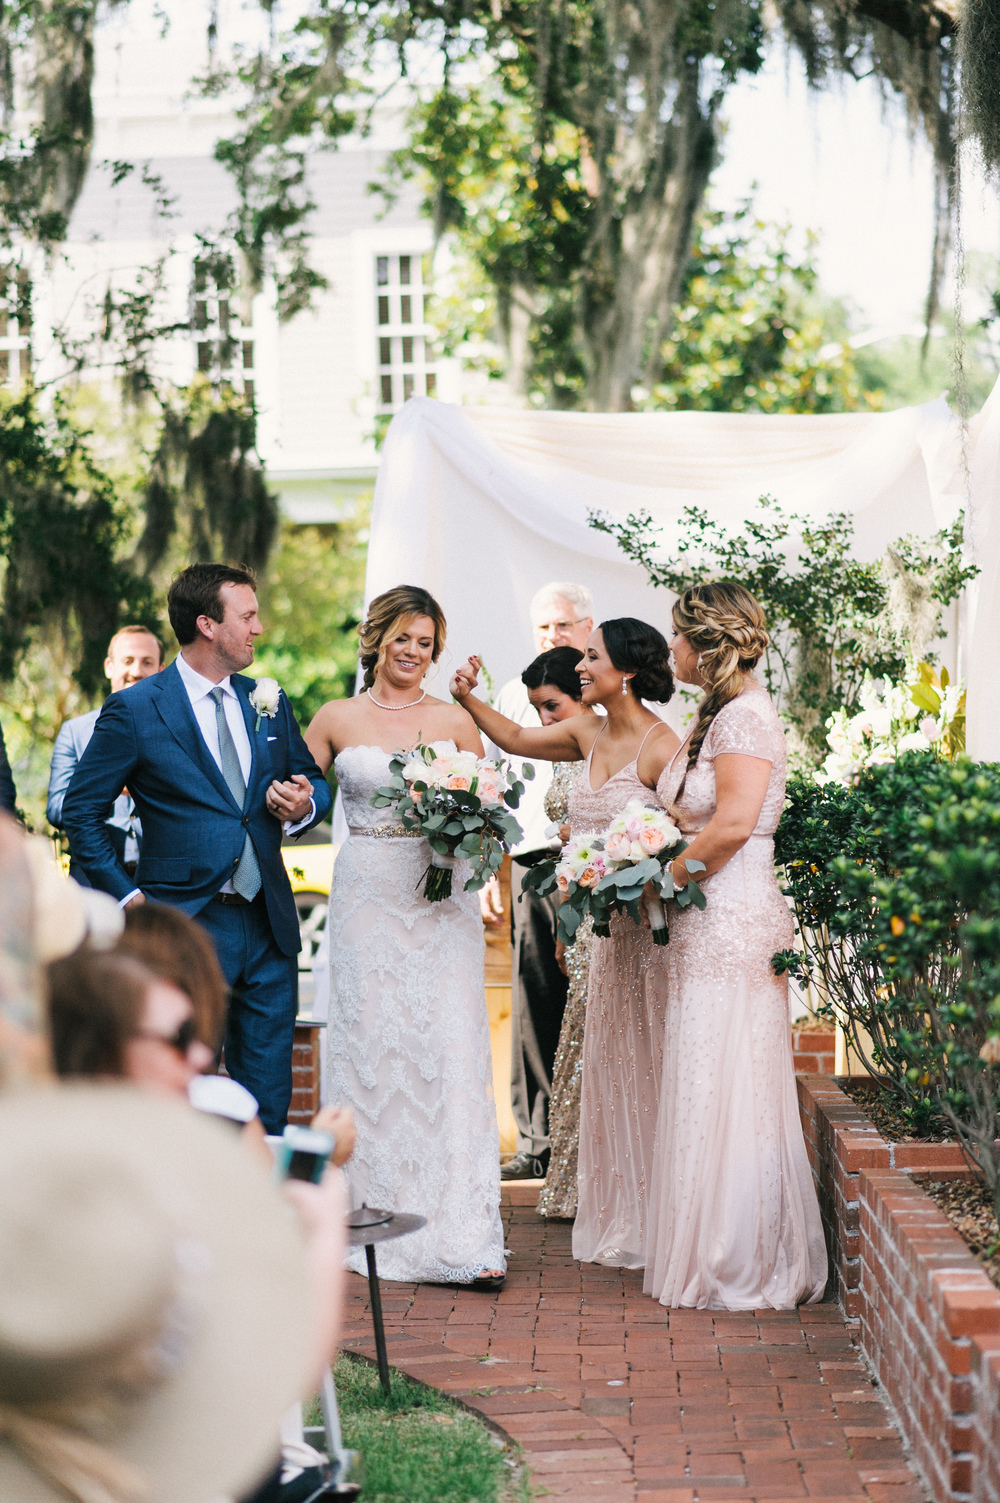 kacey-and-niall-June-4-savanna-georgia-wedding-m-newsom-photography- (347 of 961).jpg